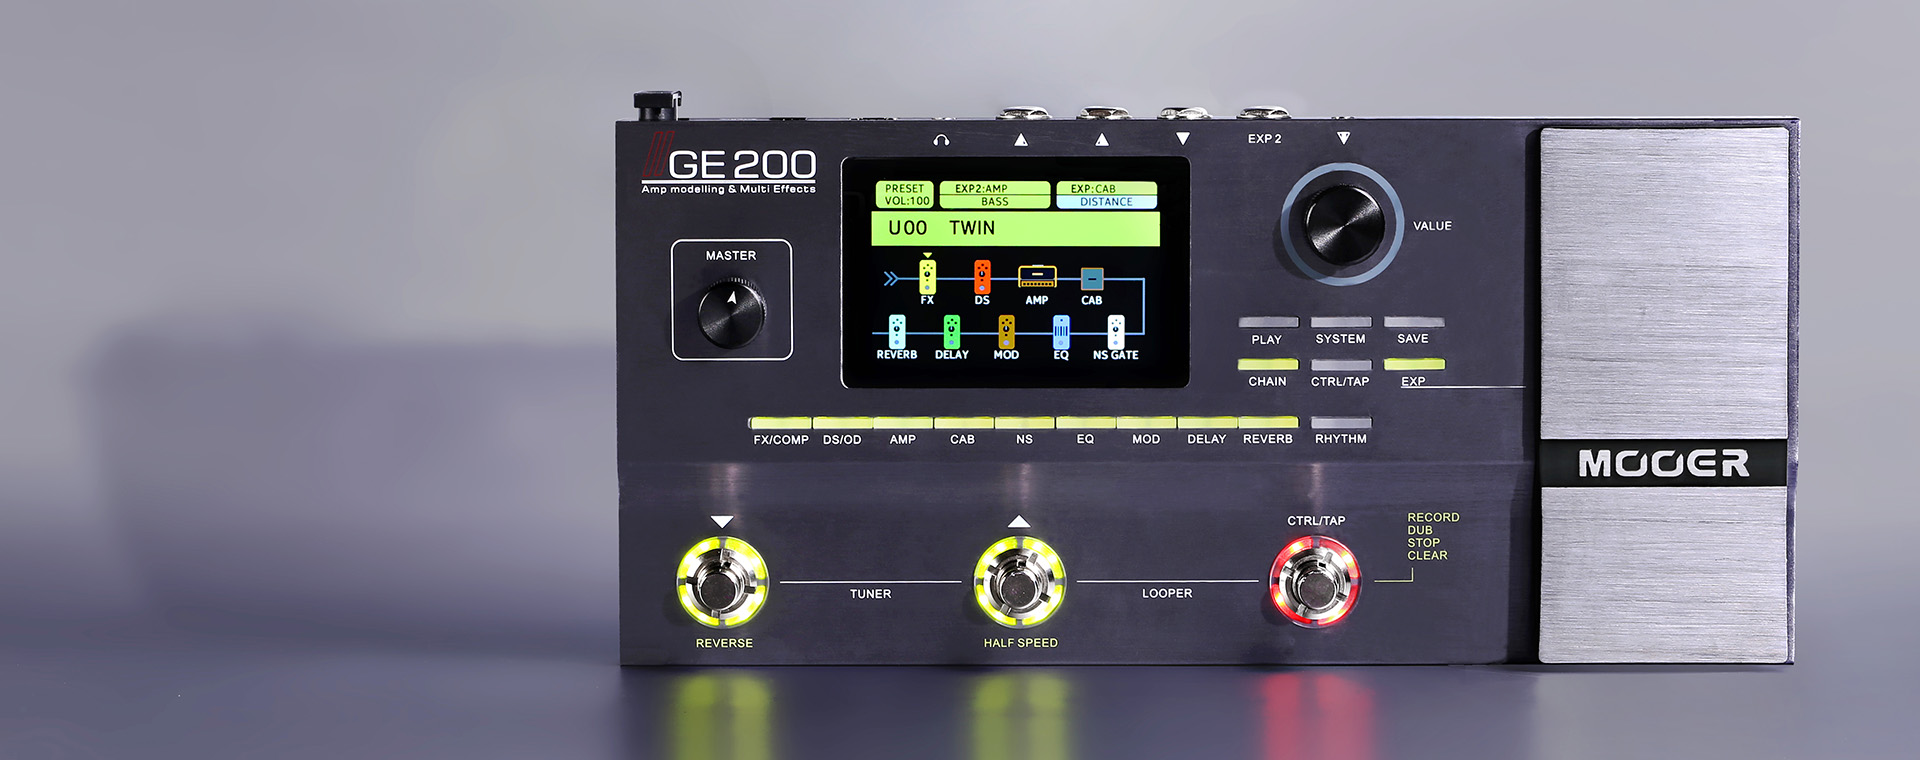 Mooer GE200 en Chile Disponible en Kowka